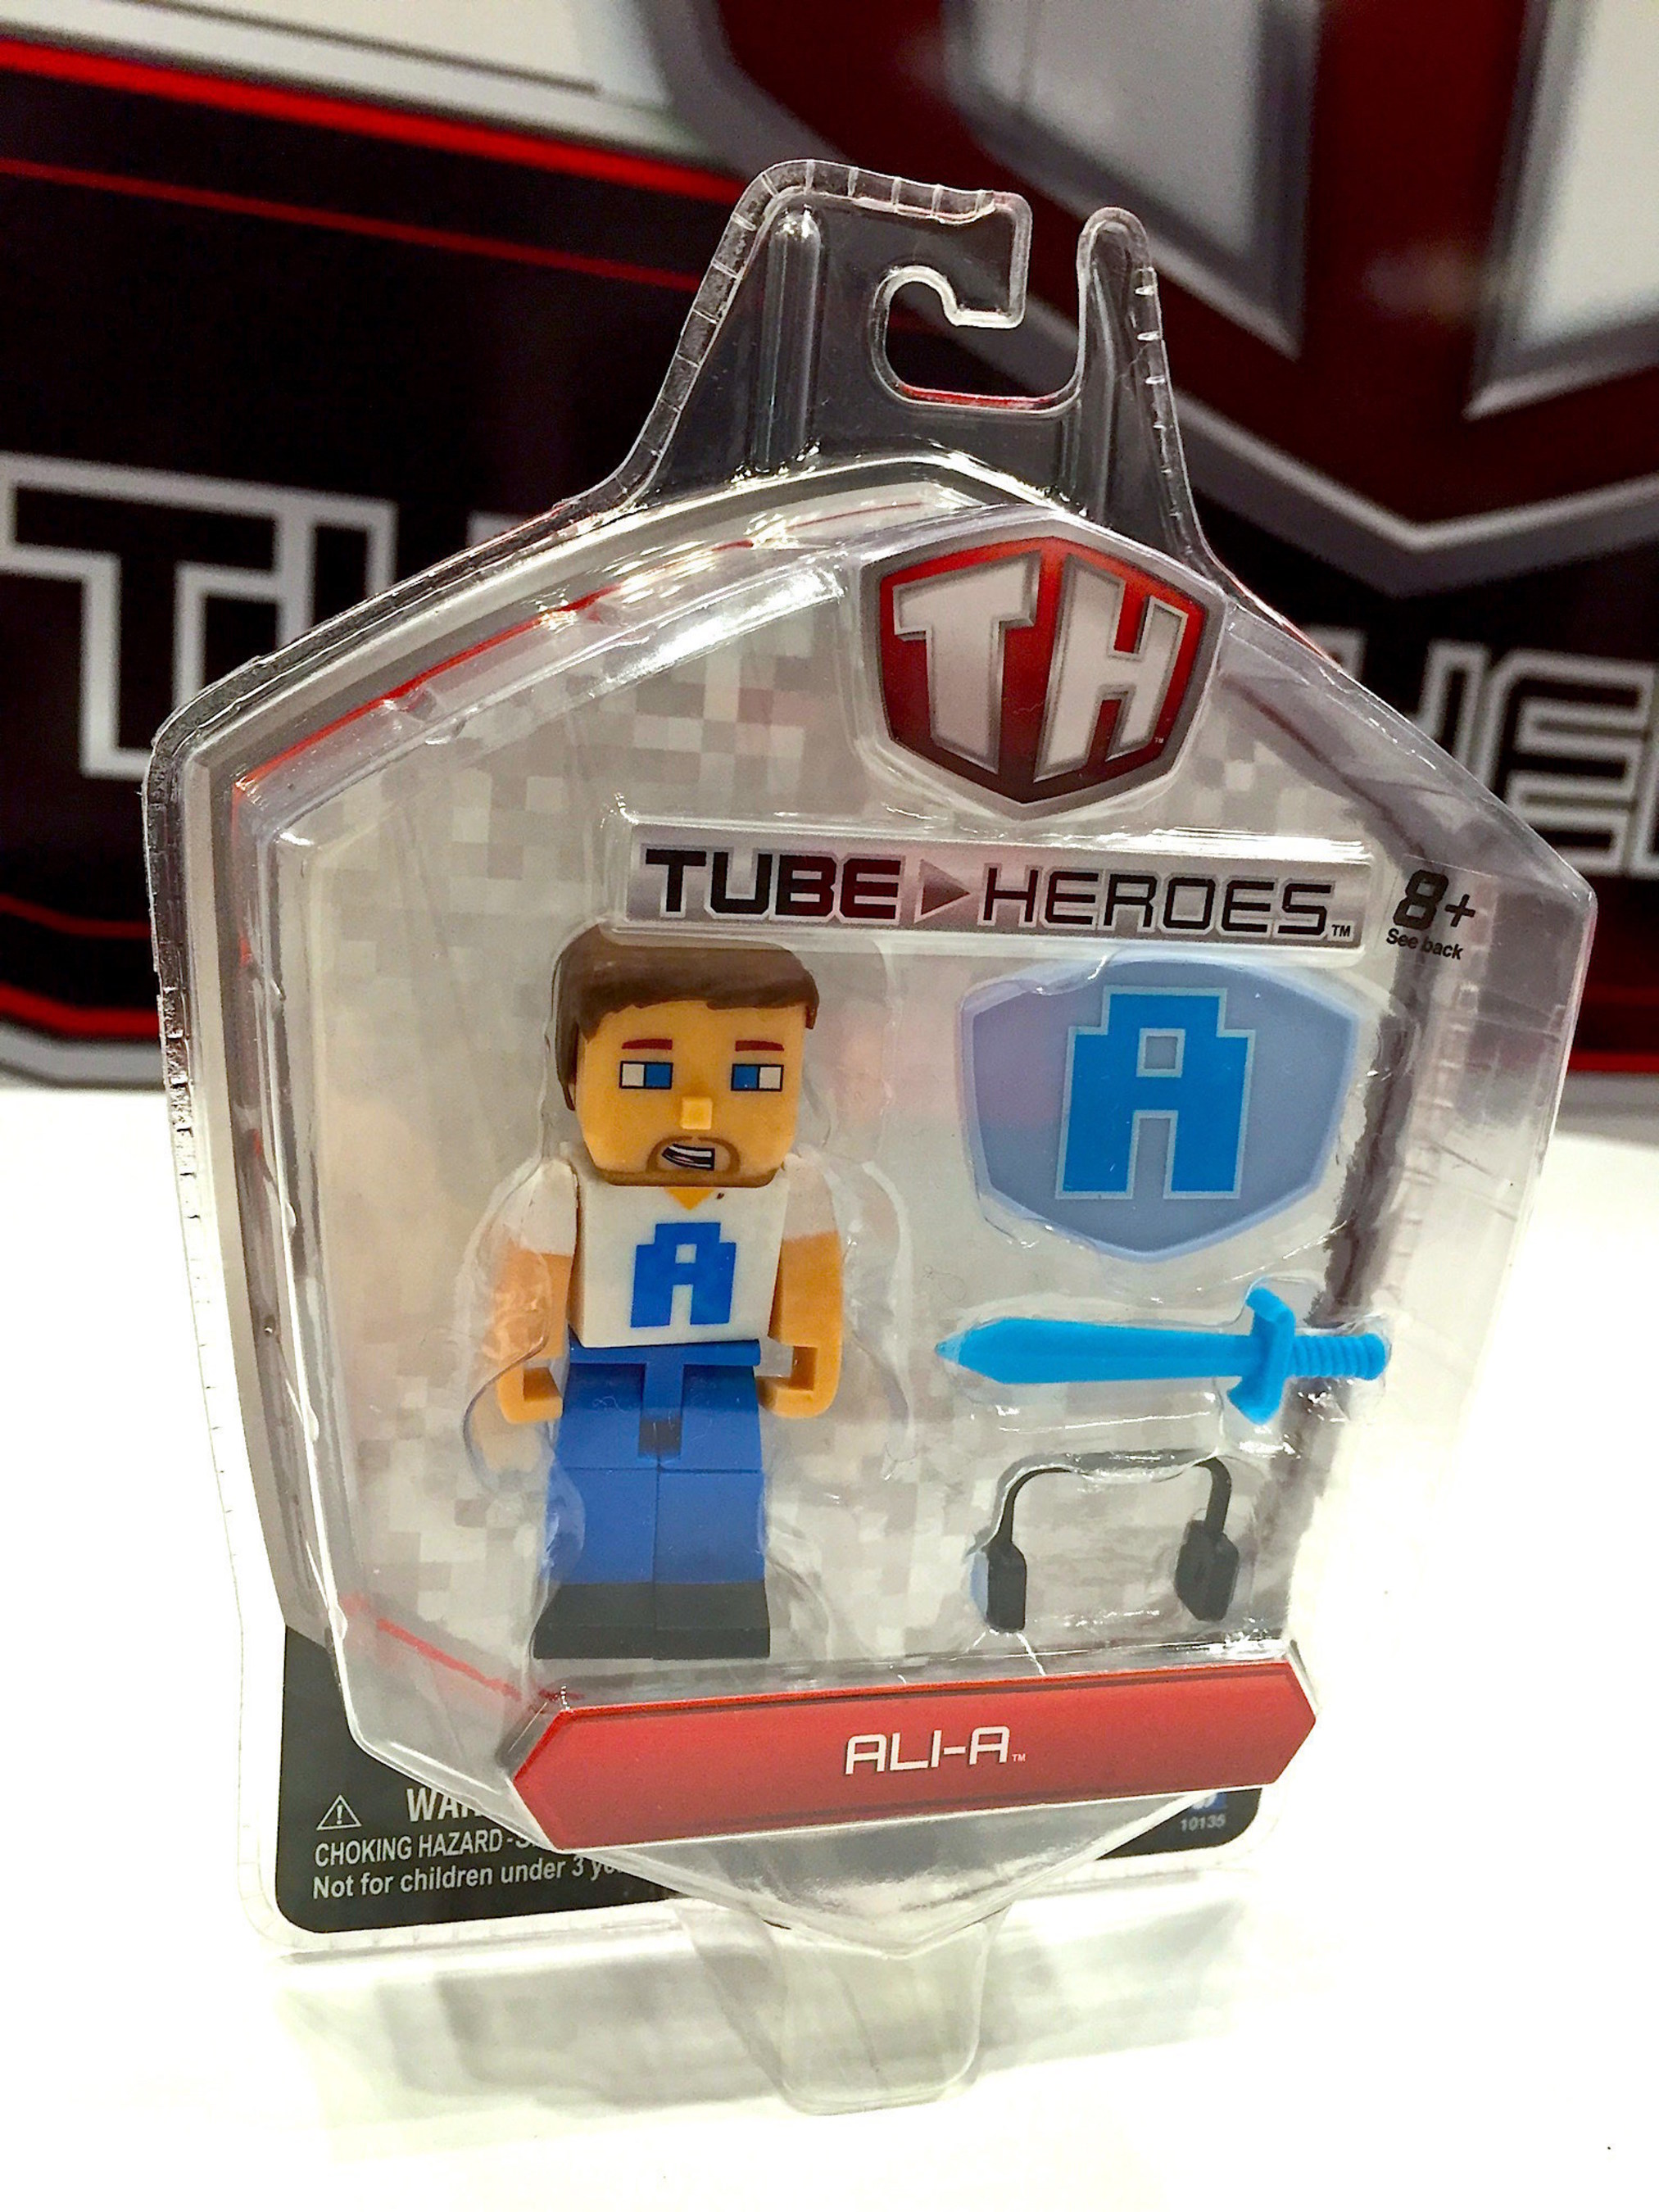 Tube Heroes Releases Holiday Gift Guide for Young YouTube Gaming Fans at #NYCC and Beyond